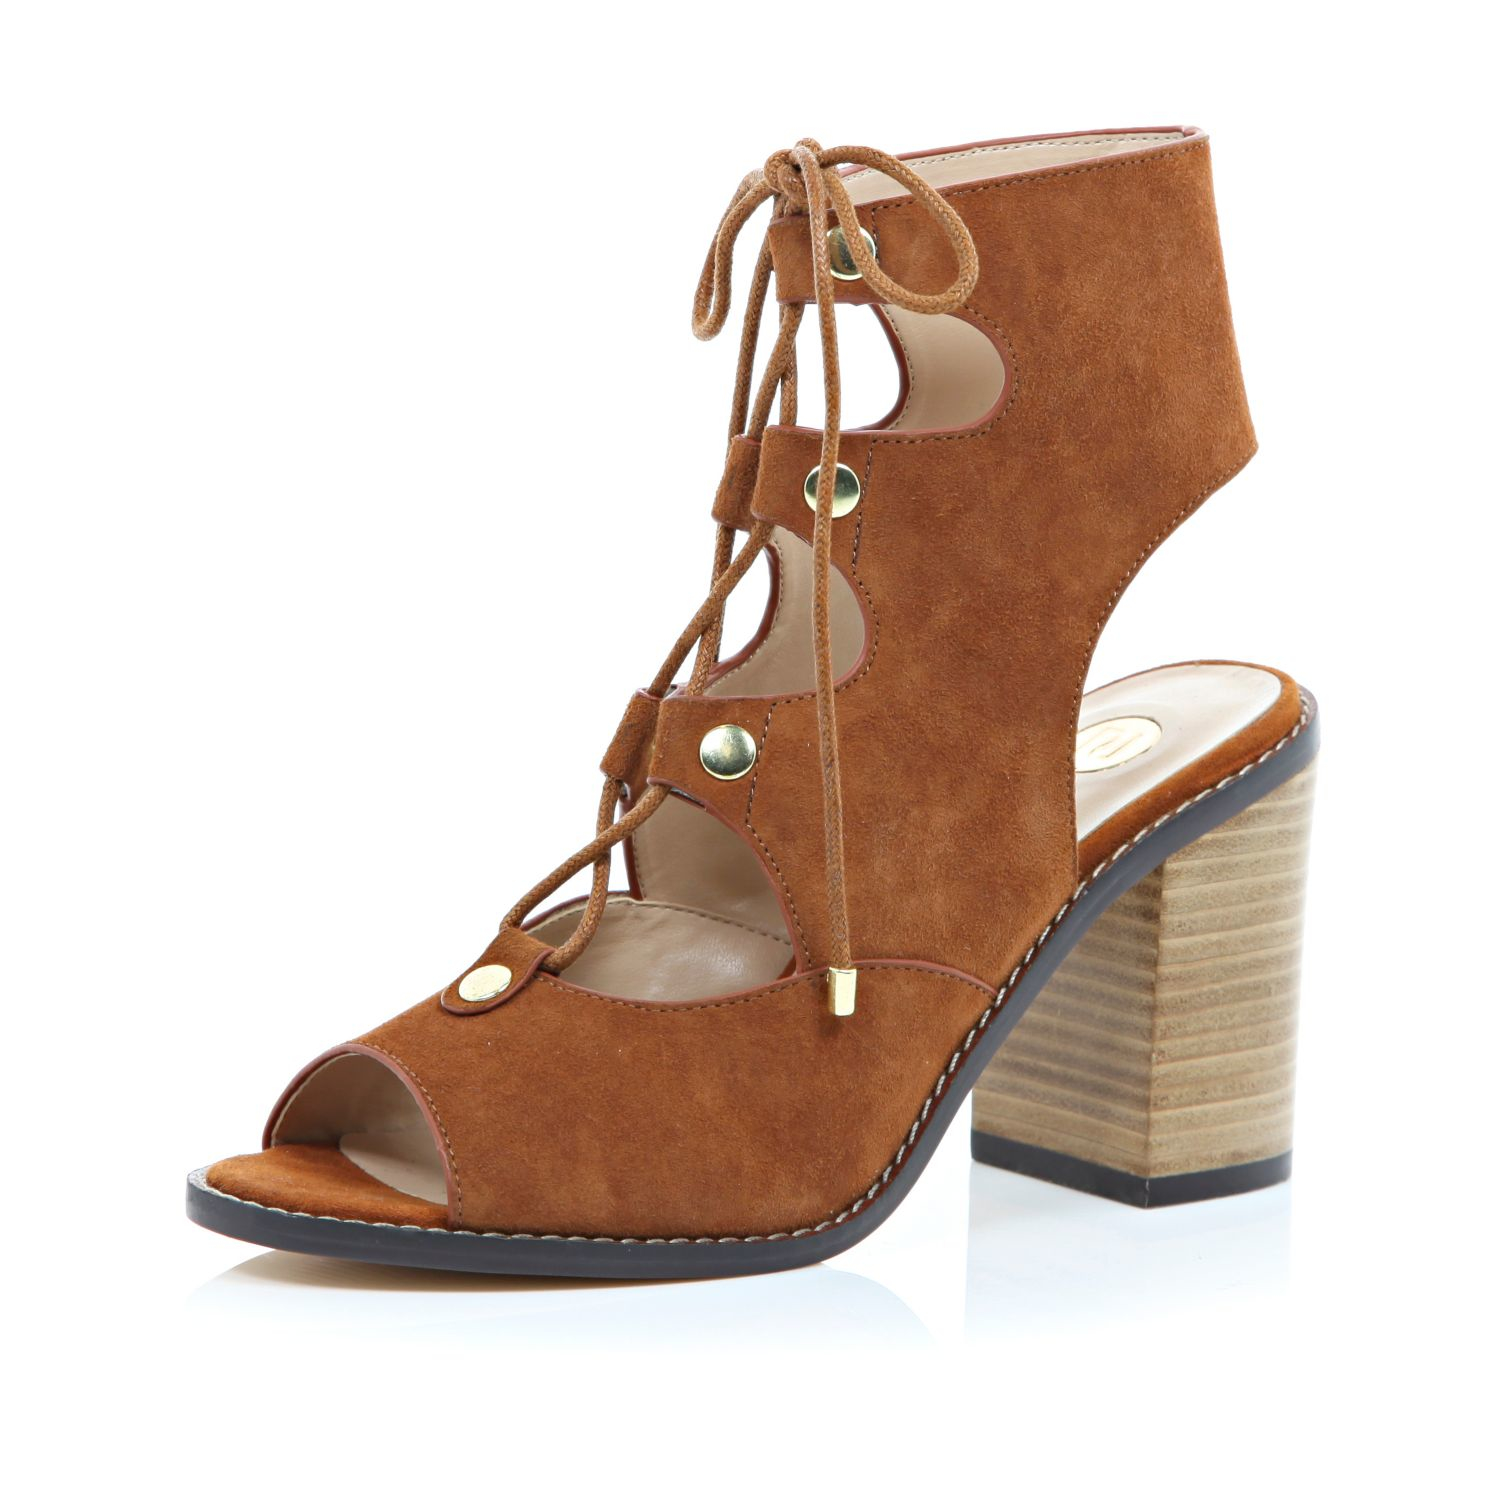 River Island Tan Suede Ghillie Lace Up Heeled Sandals in Brown - Lyst